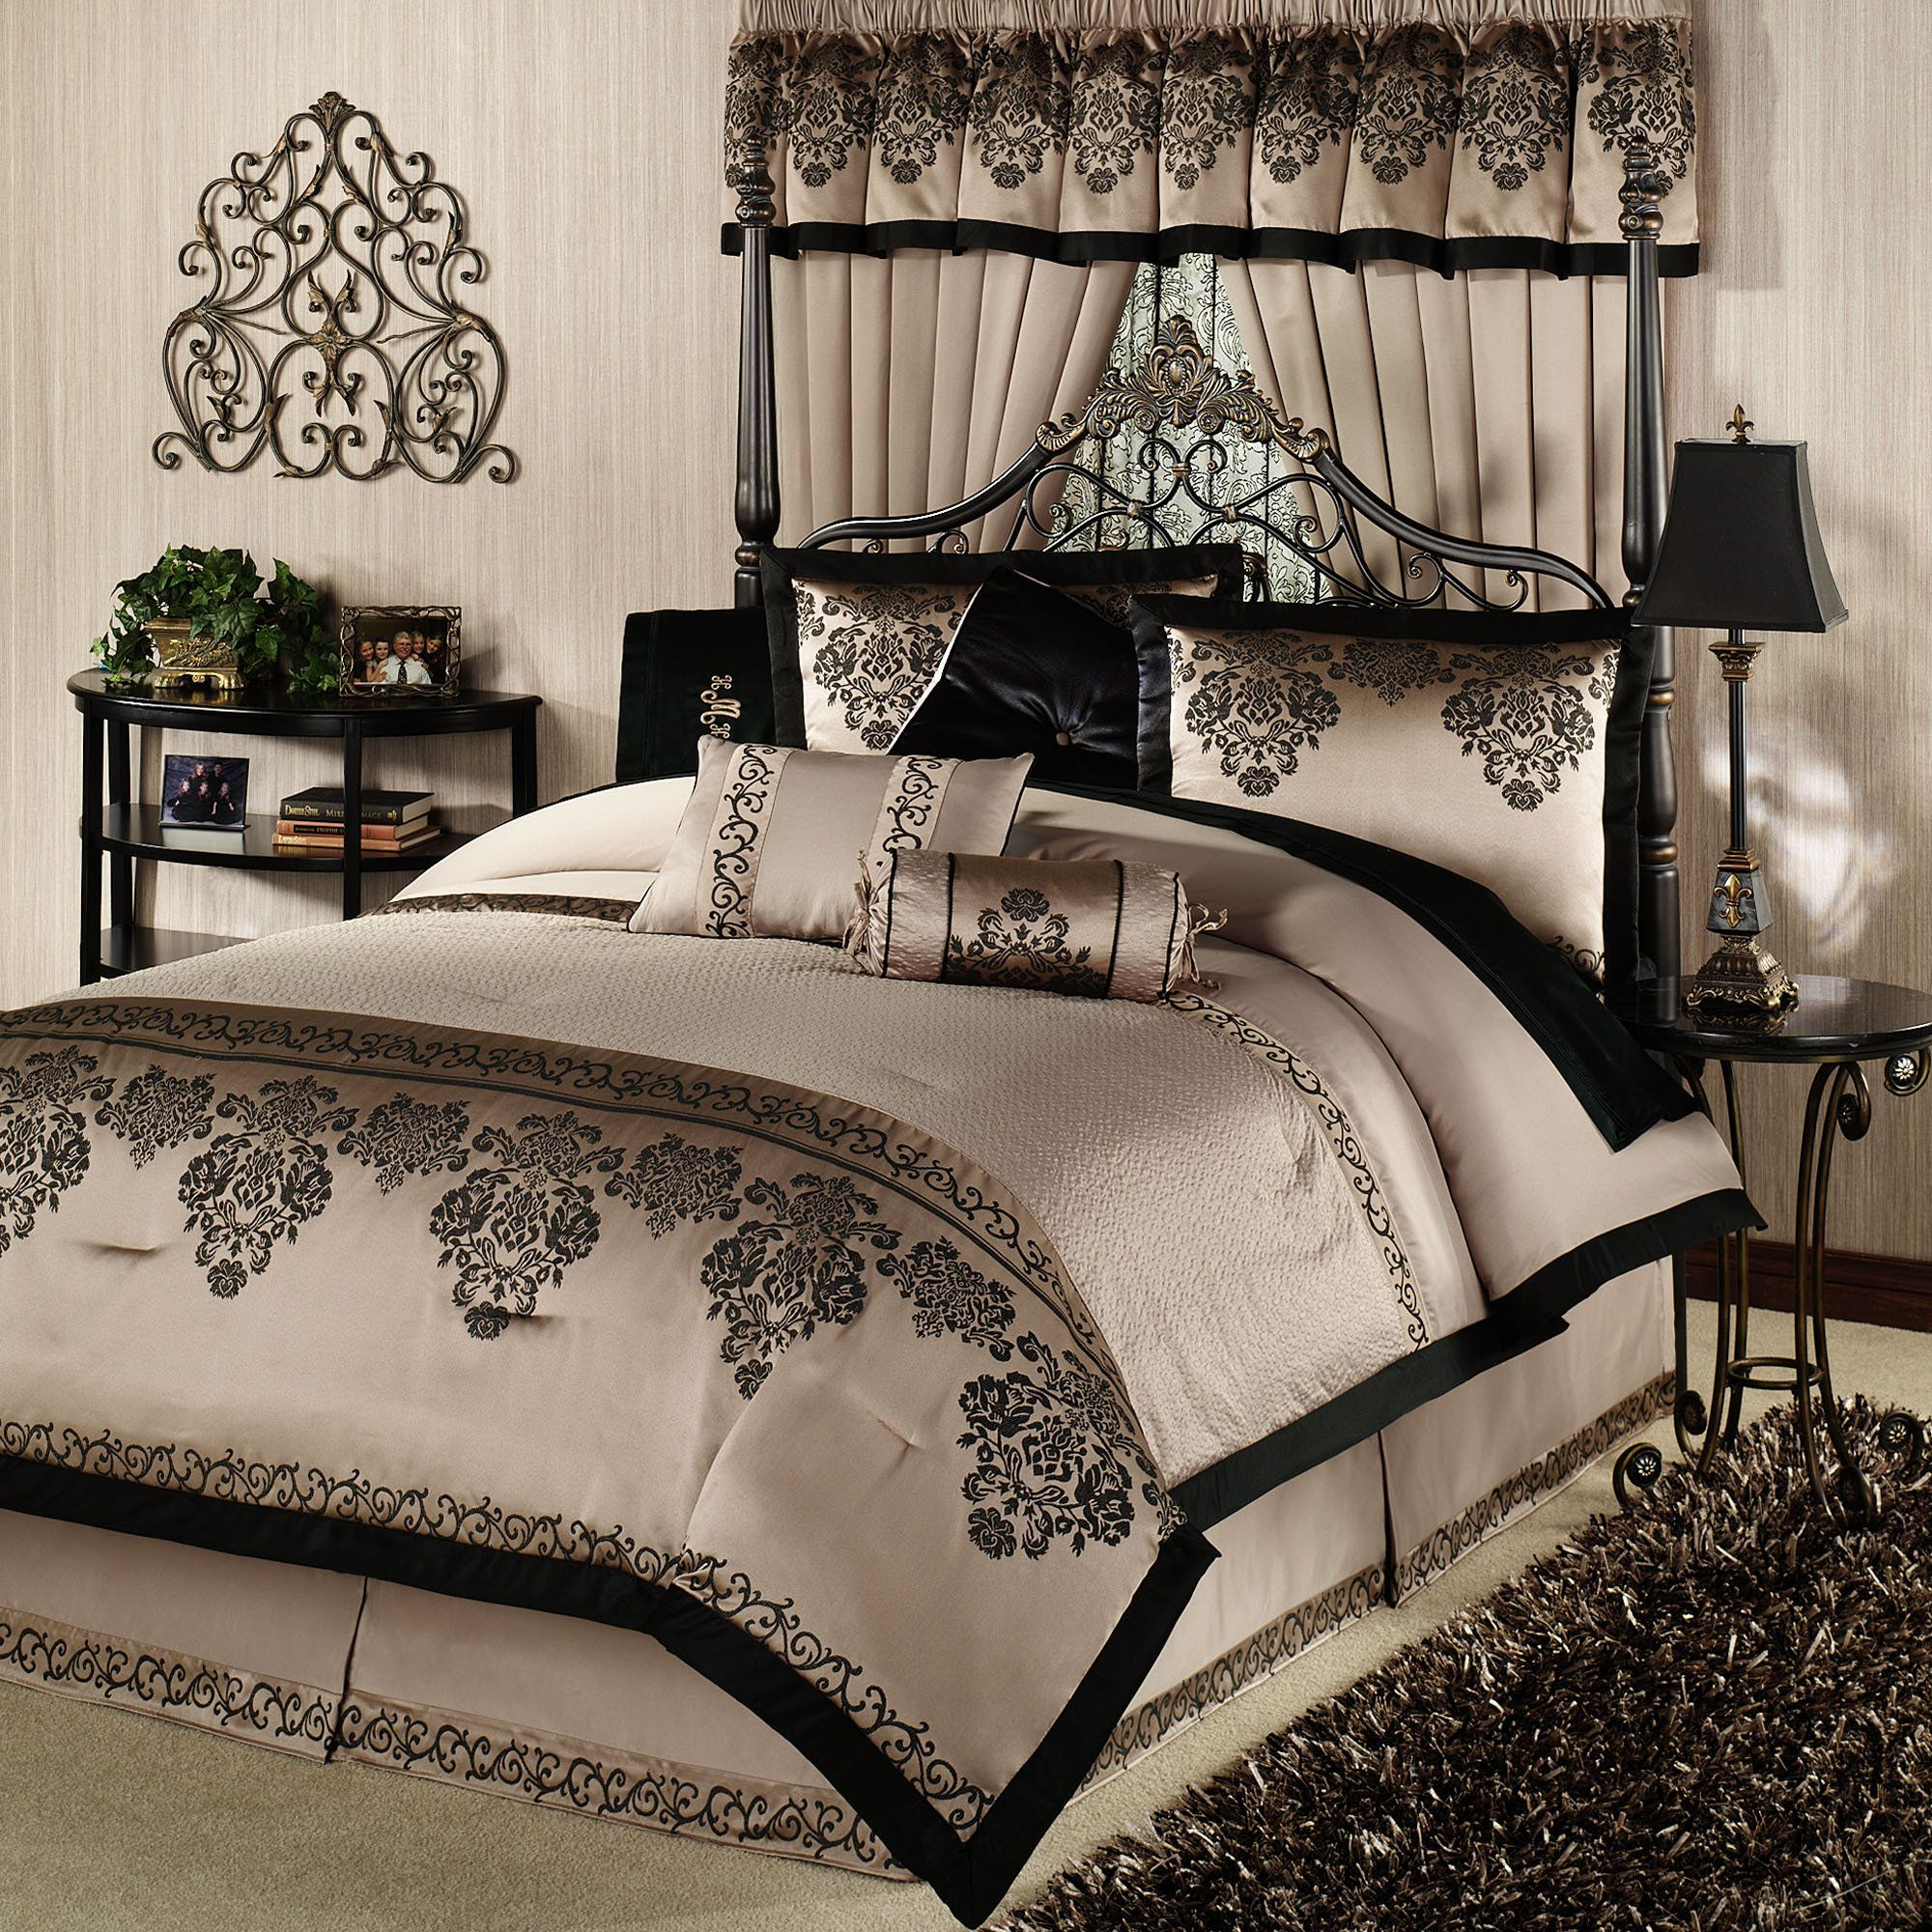 King Size Bedroom Comforter Sets king size bed comforters sets | overview details sizes swatch